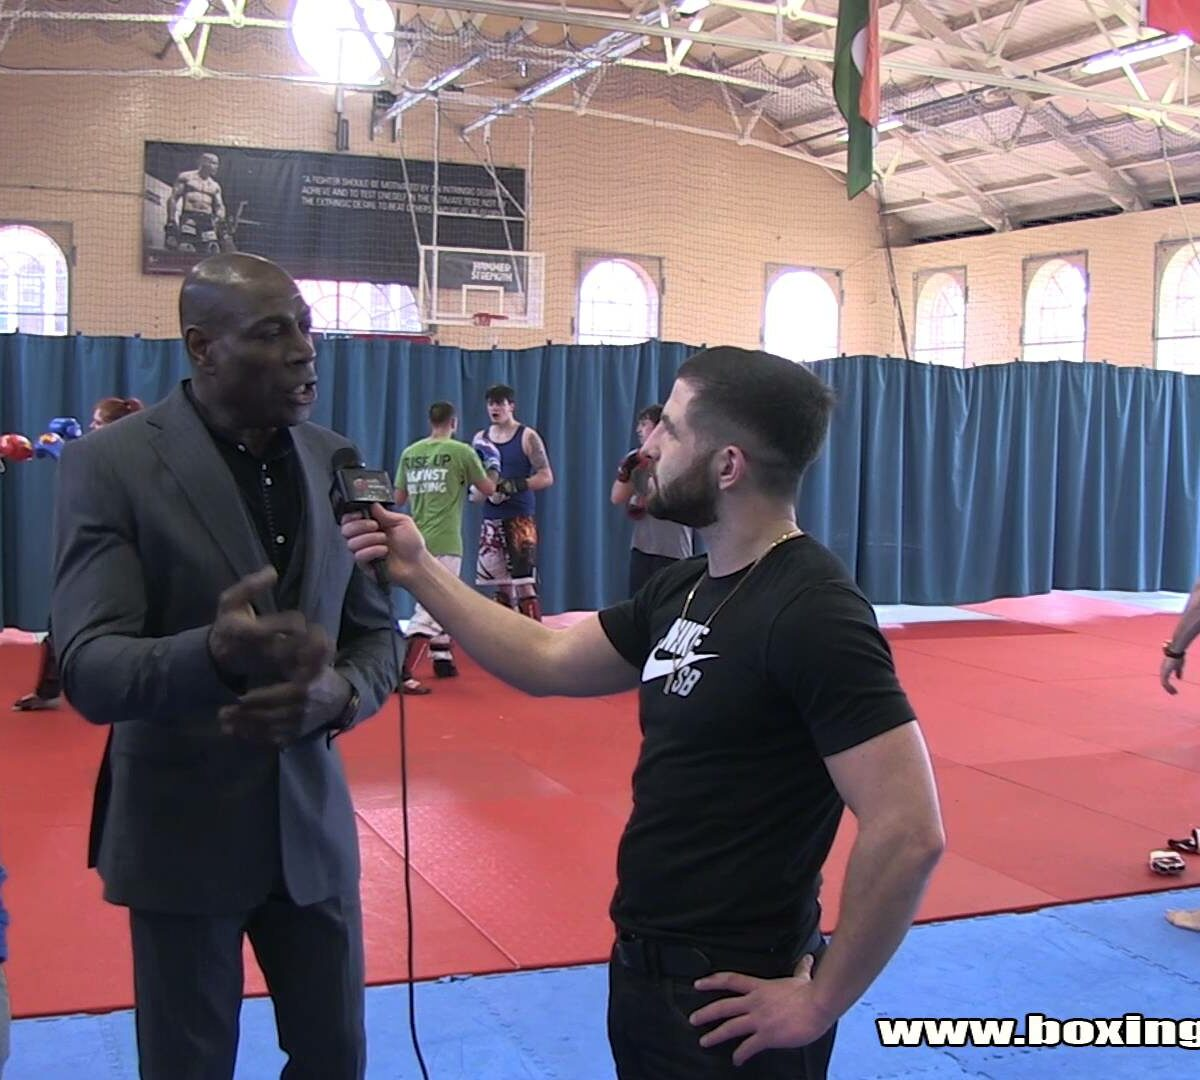 Flave interviews Frank Bruno at the Academy of Hard Knocks